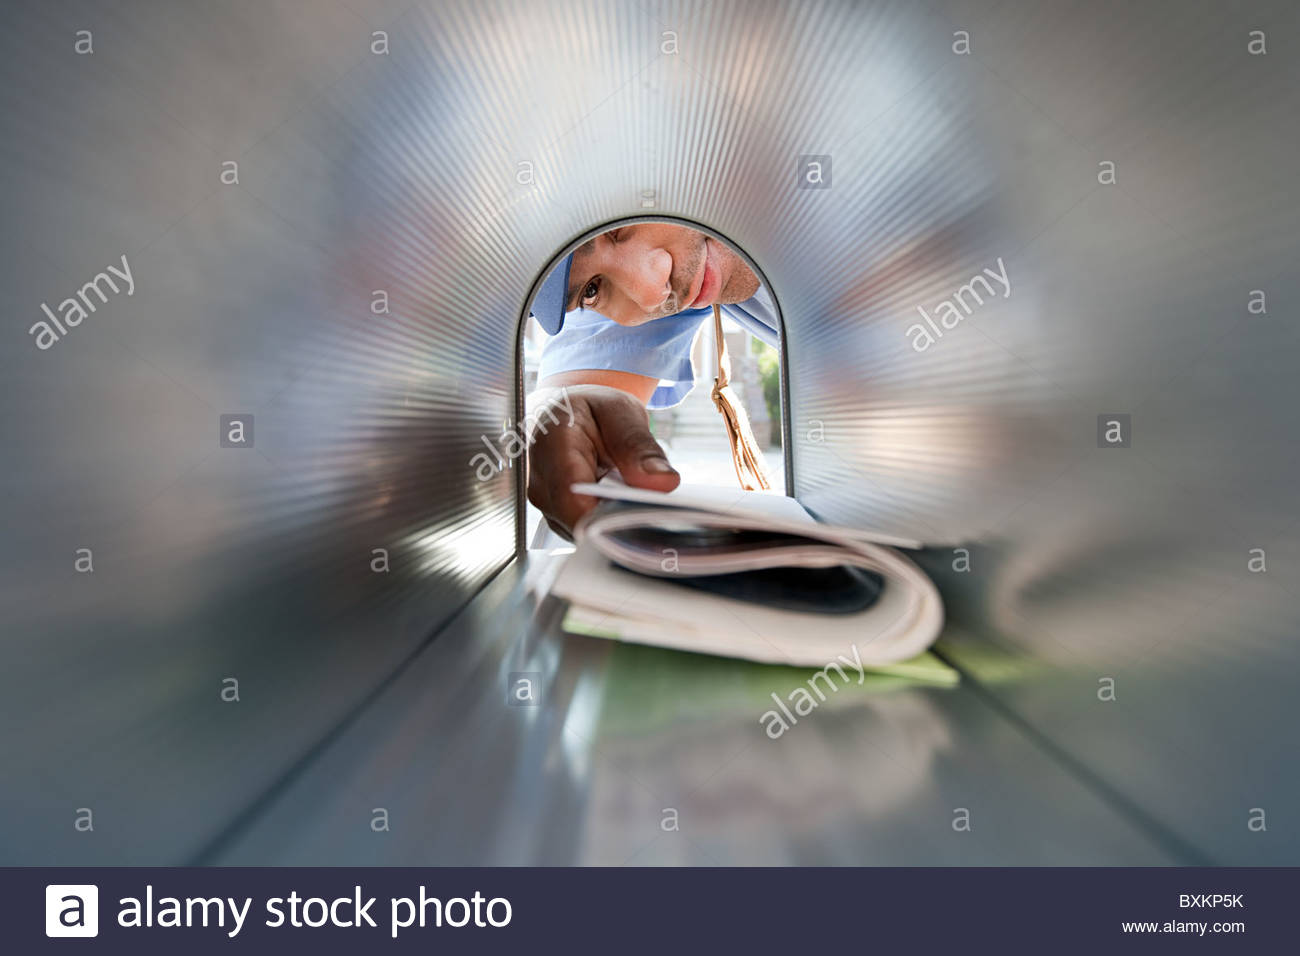 Man collecting mail from mailbox - Stock Image